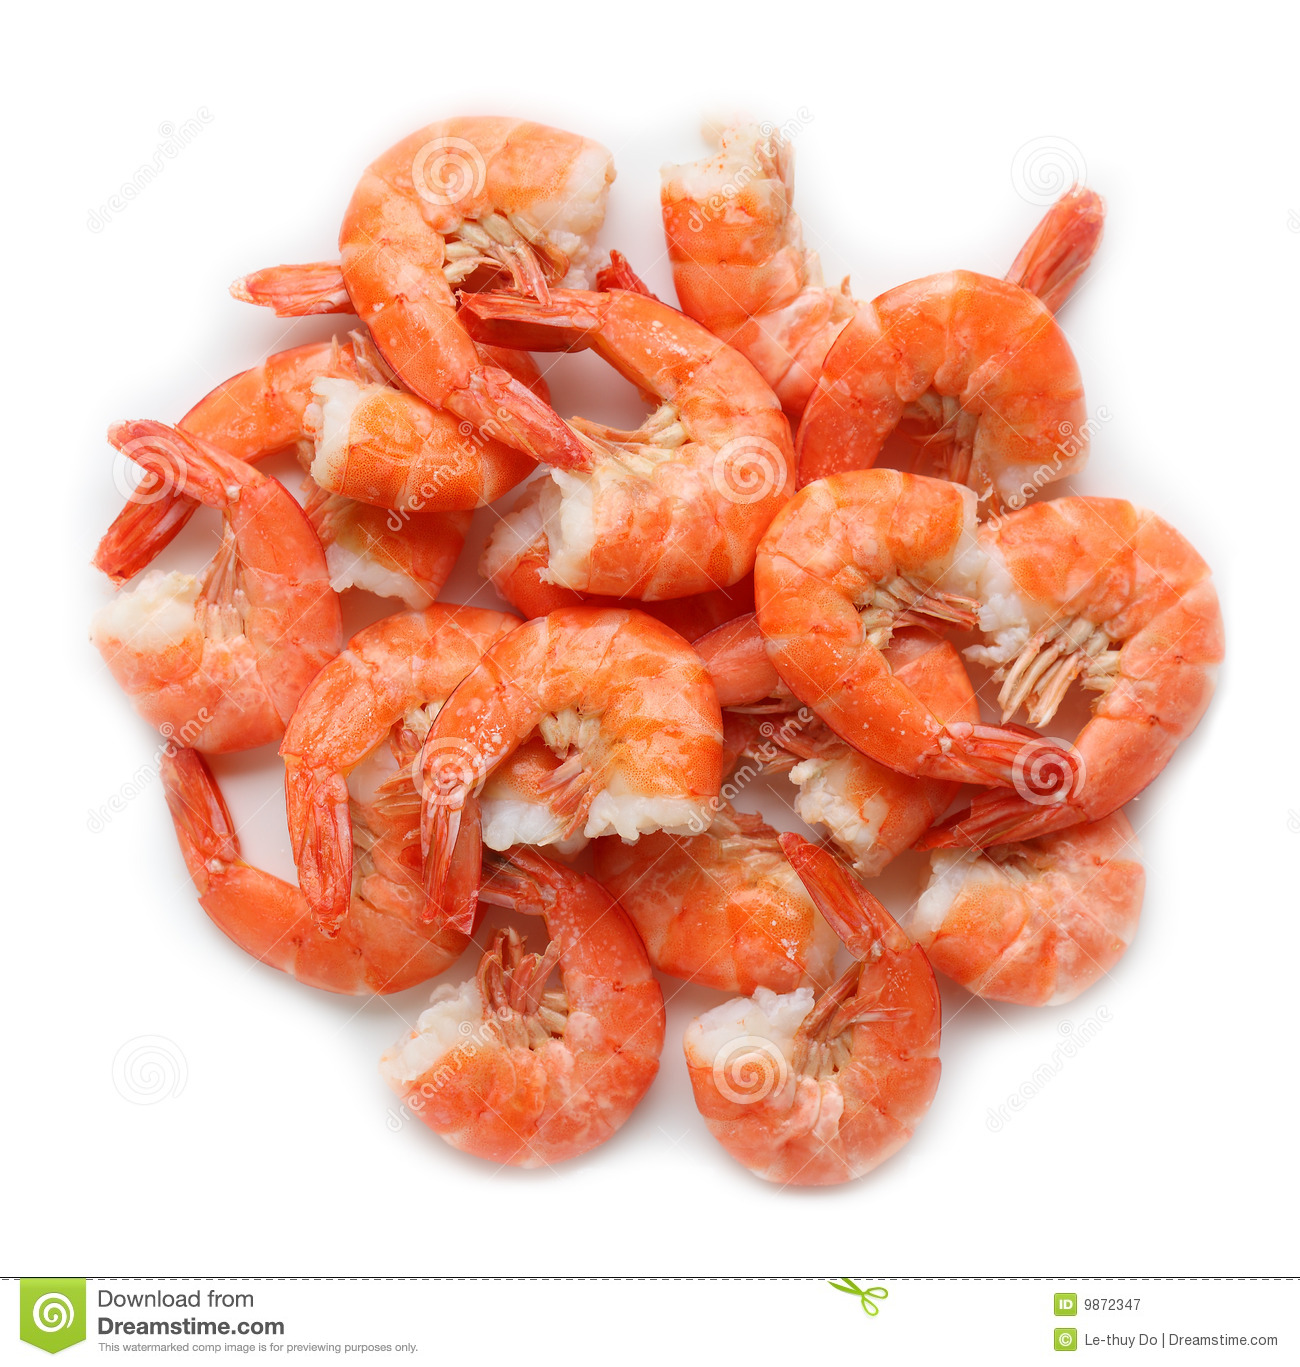 Group of cooked shrimps isolated on white background.